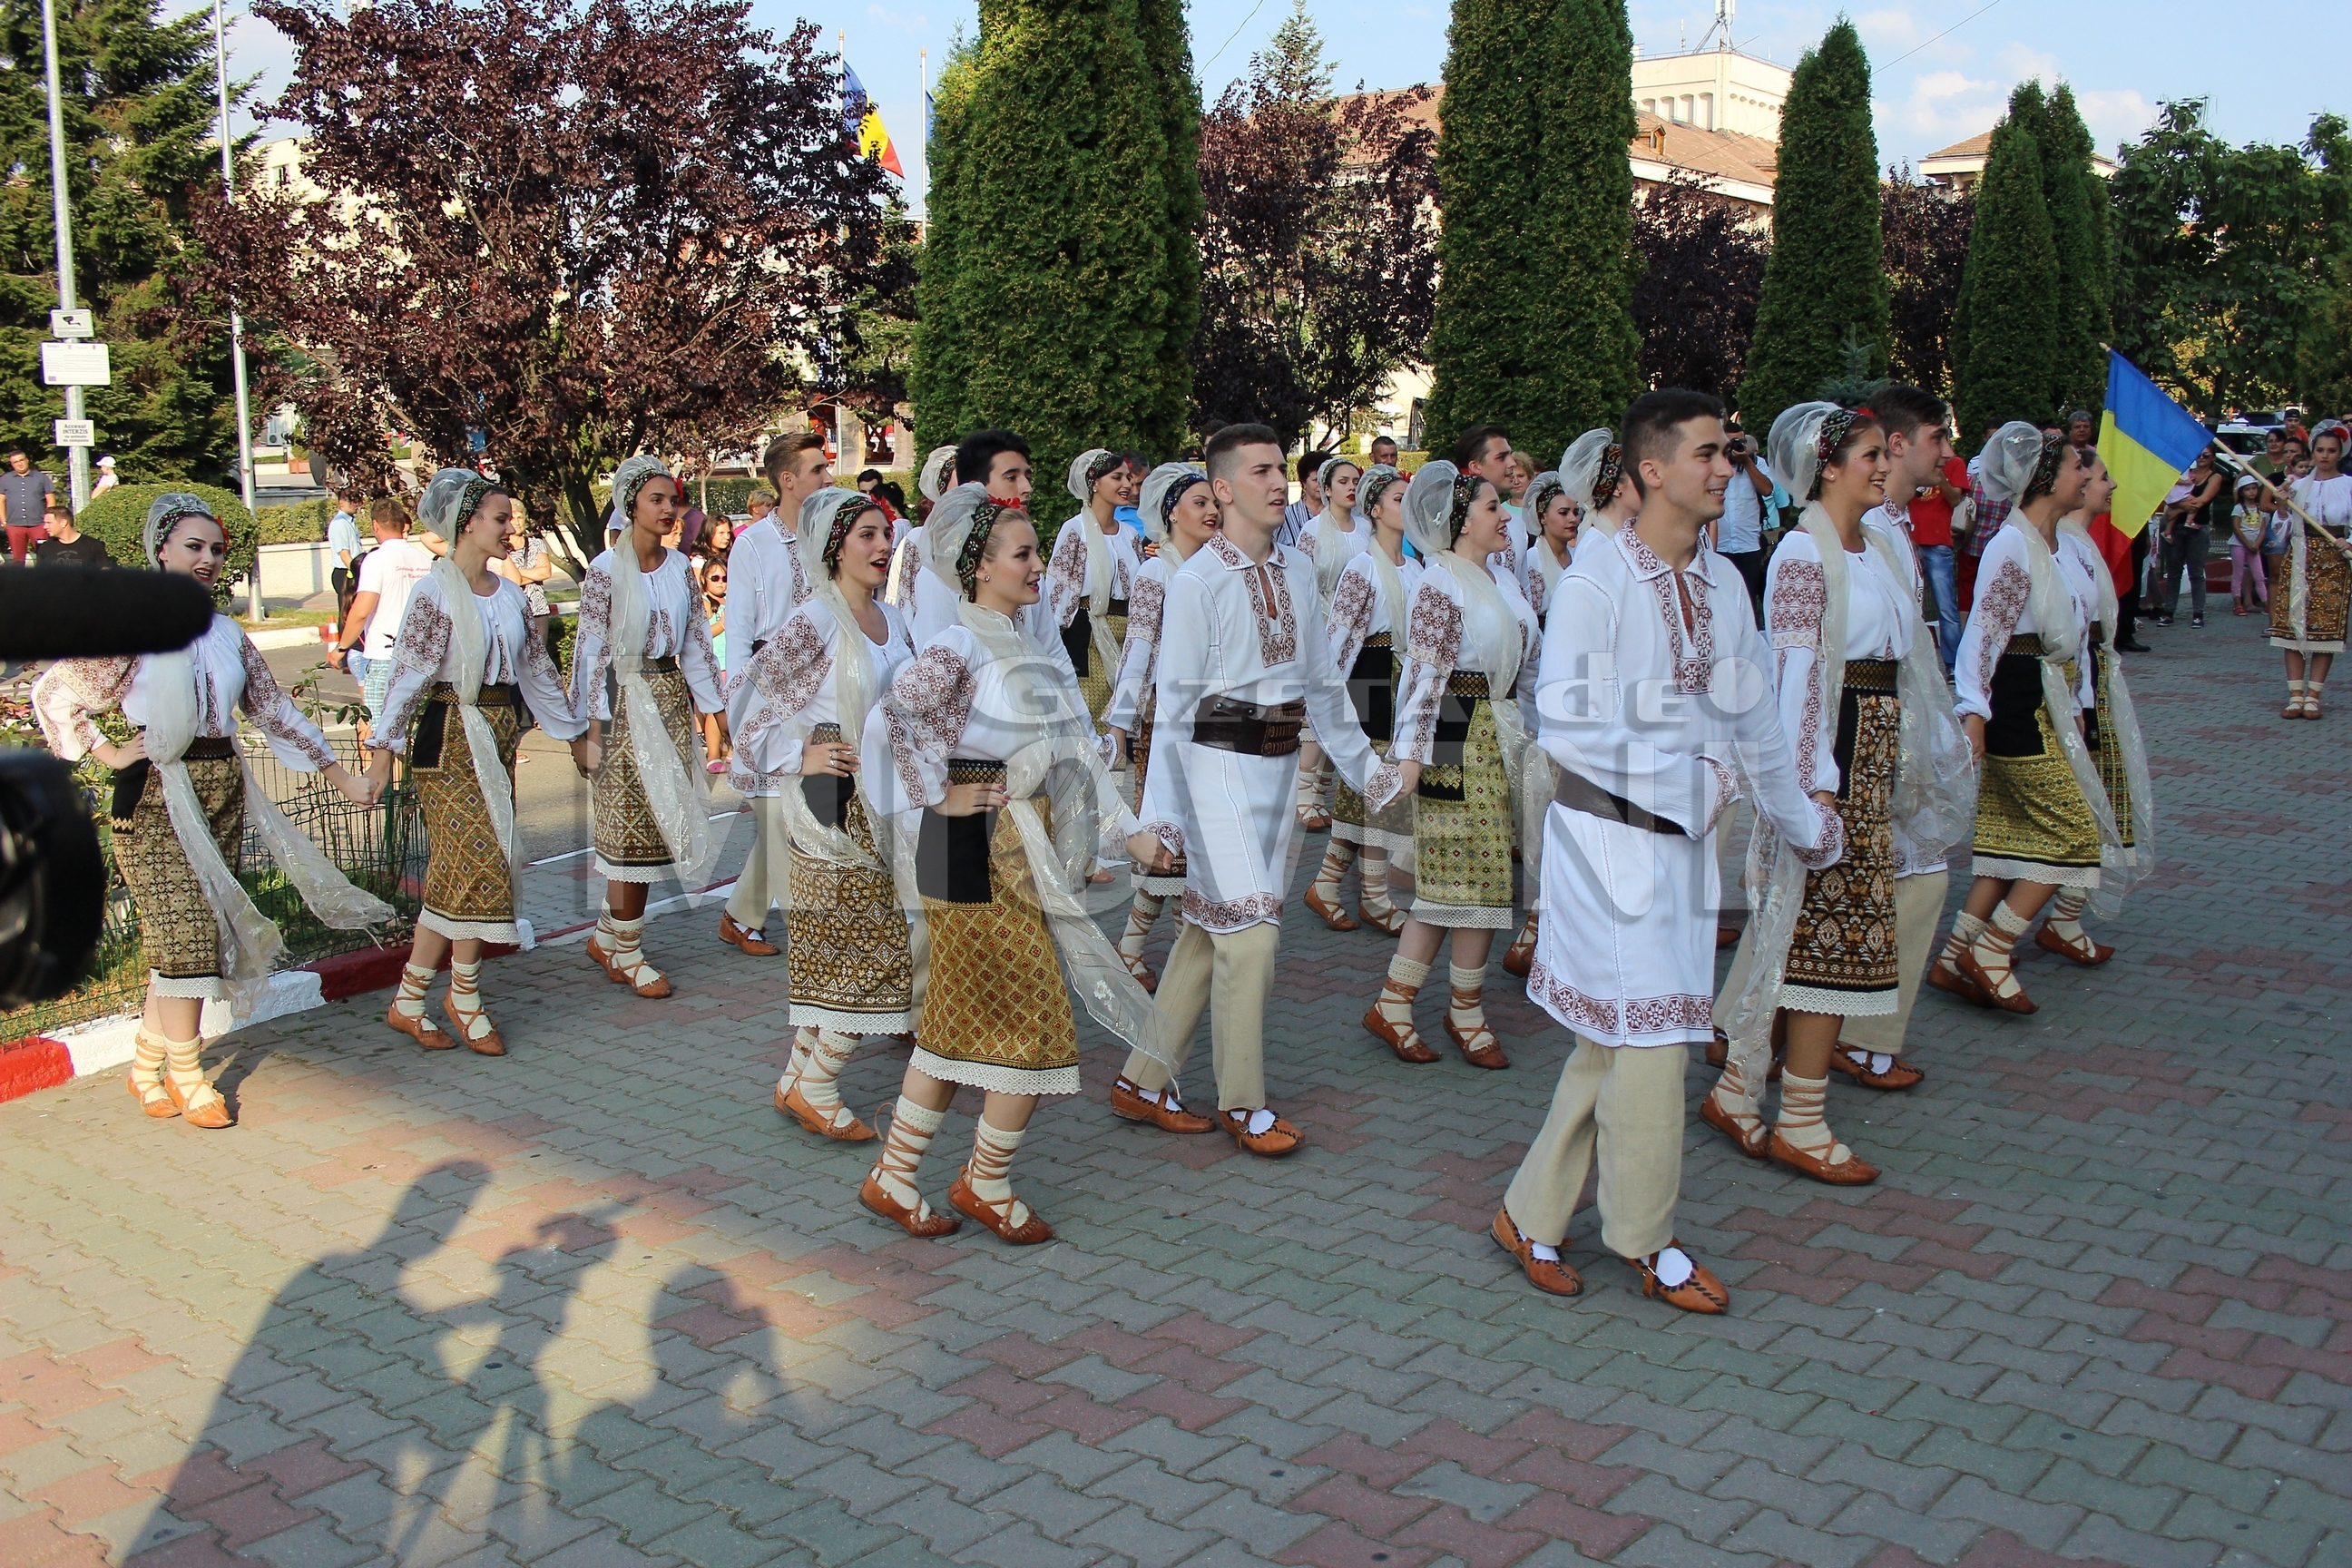 festivalul-international-de-folclor-carpati-mioveni-11-august-2016 (6)